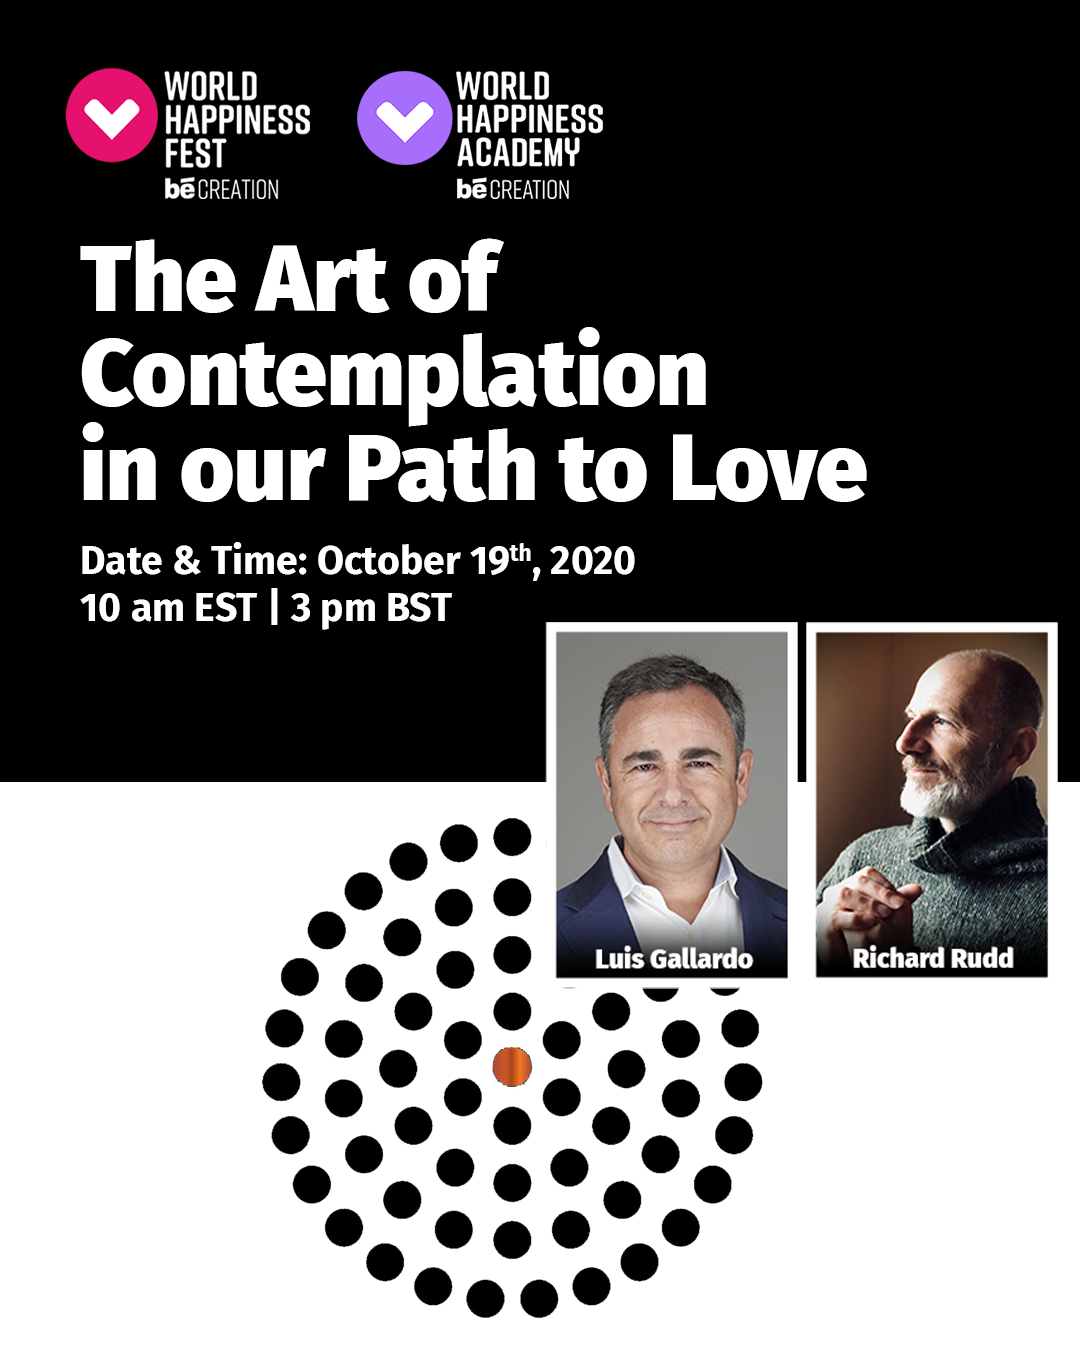 The Art of Contemplation in the Path to Love